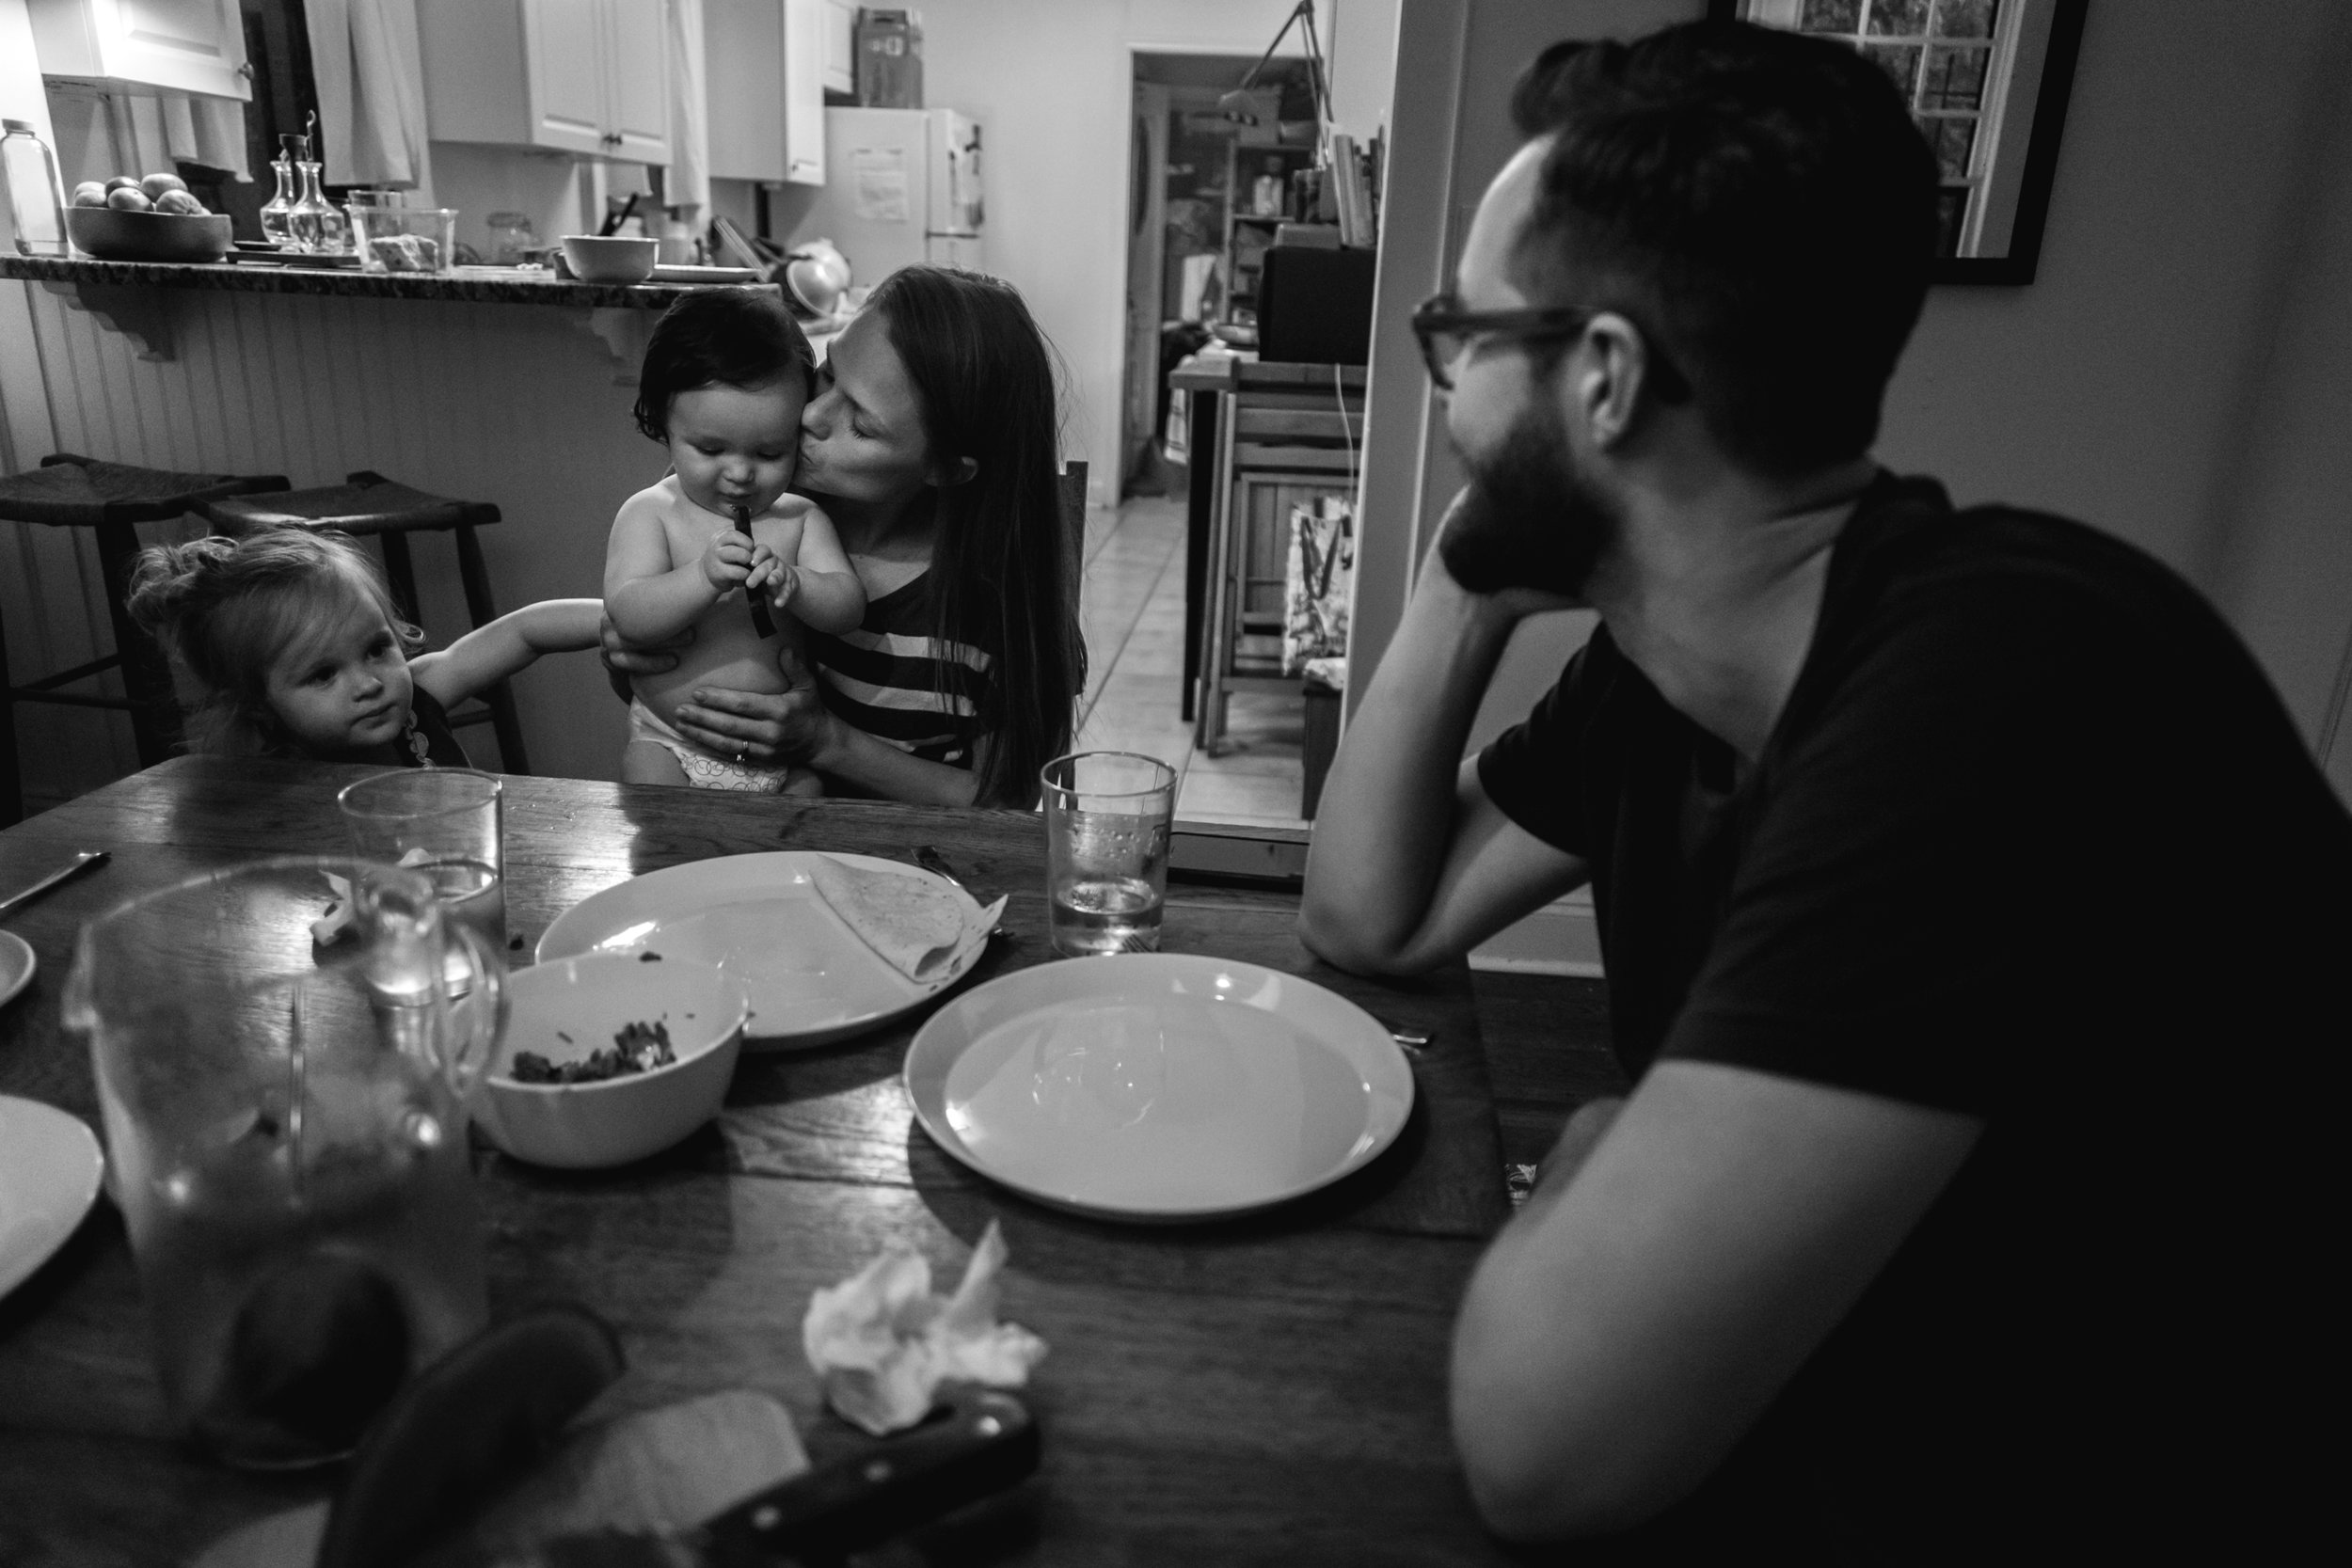 A mother kisses her son's cheek at the table with her daughter and husband watching